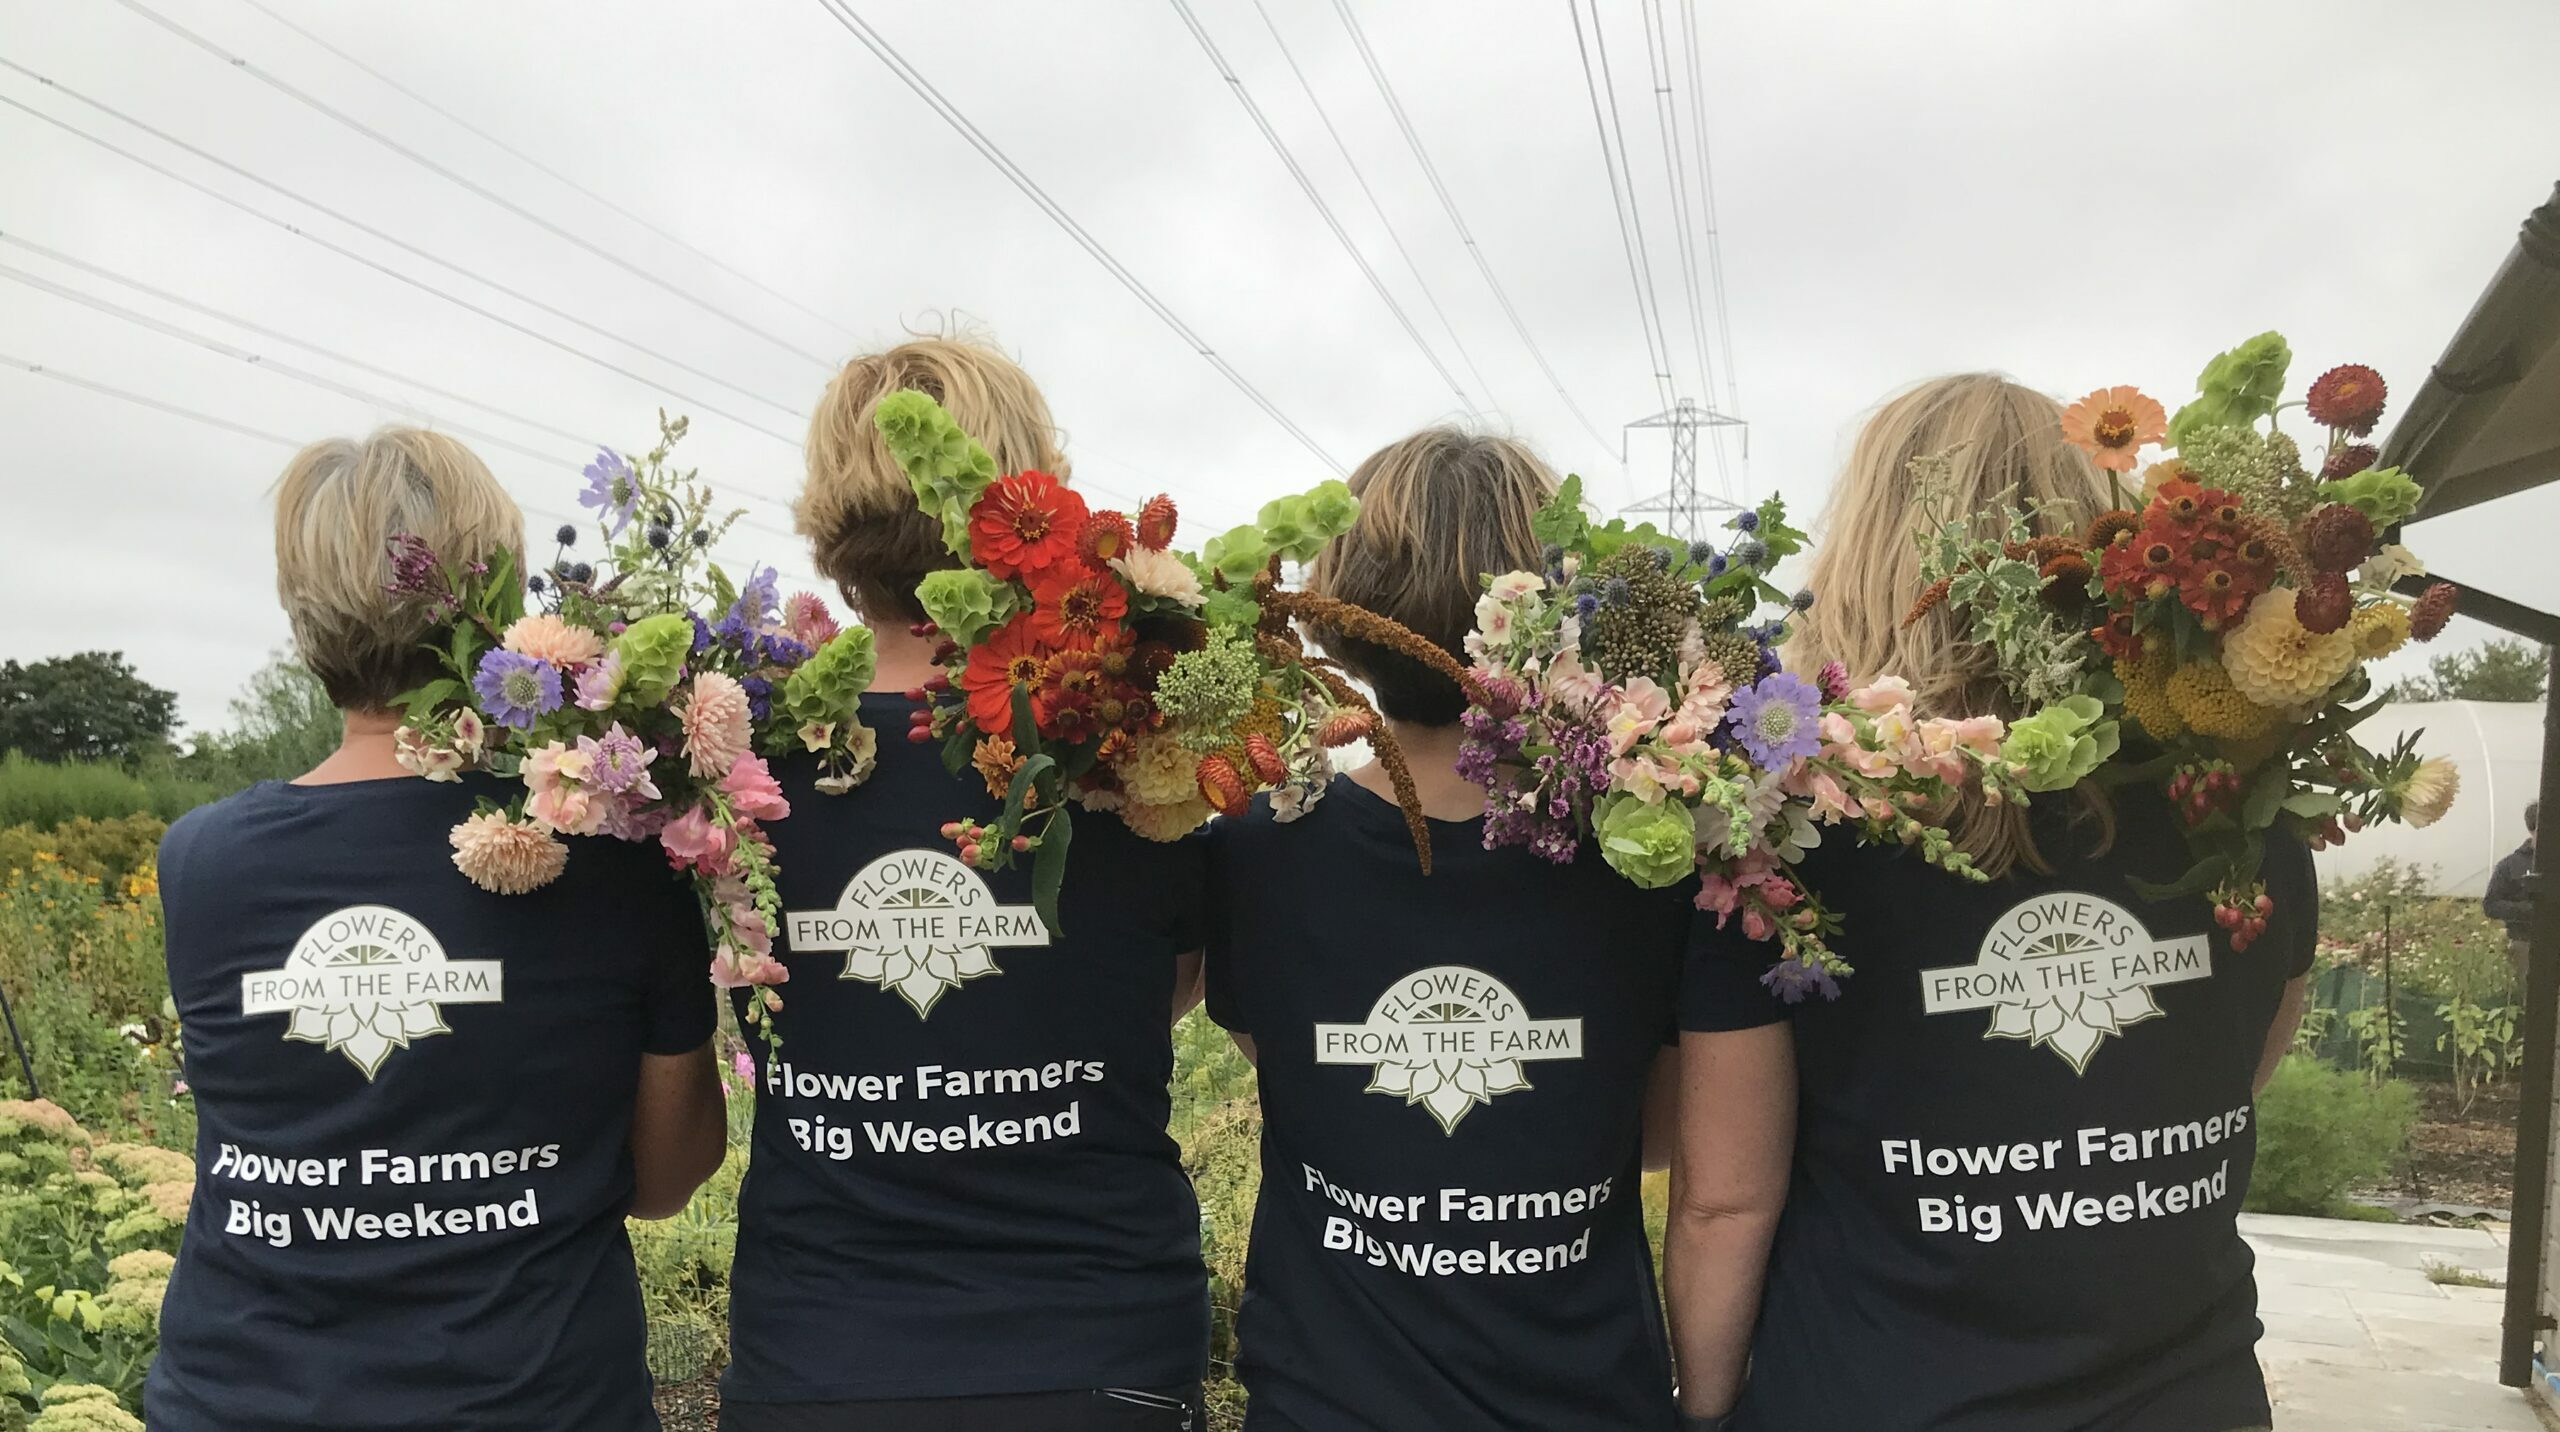 The team at Organic Blooms near Bristol with bundles of flowers on their shoulders ready for the Flower Farmers Big Weekend